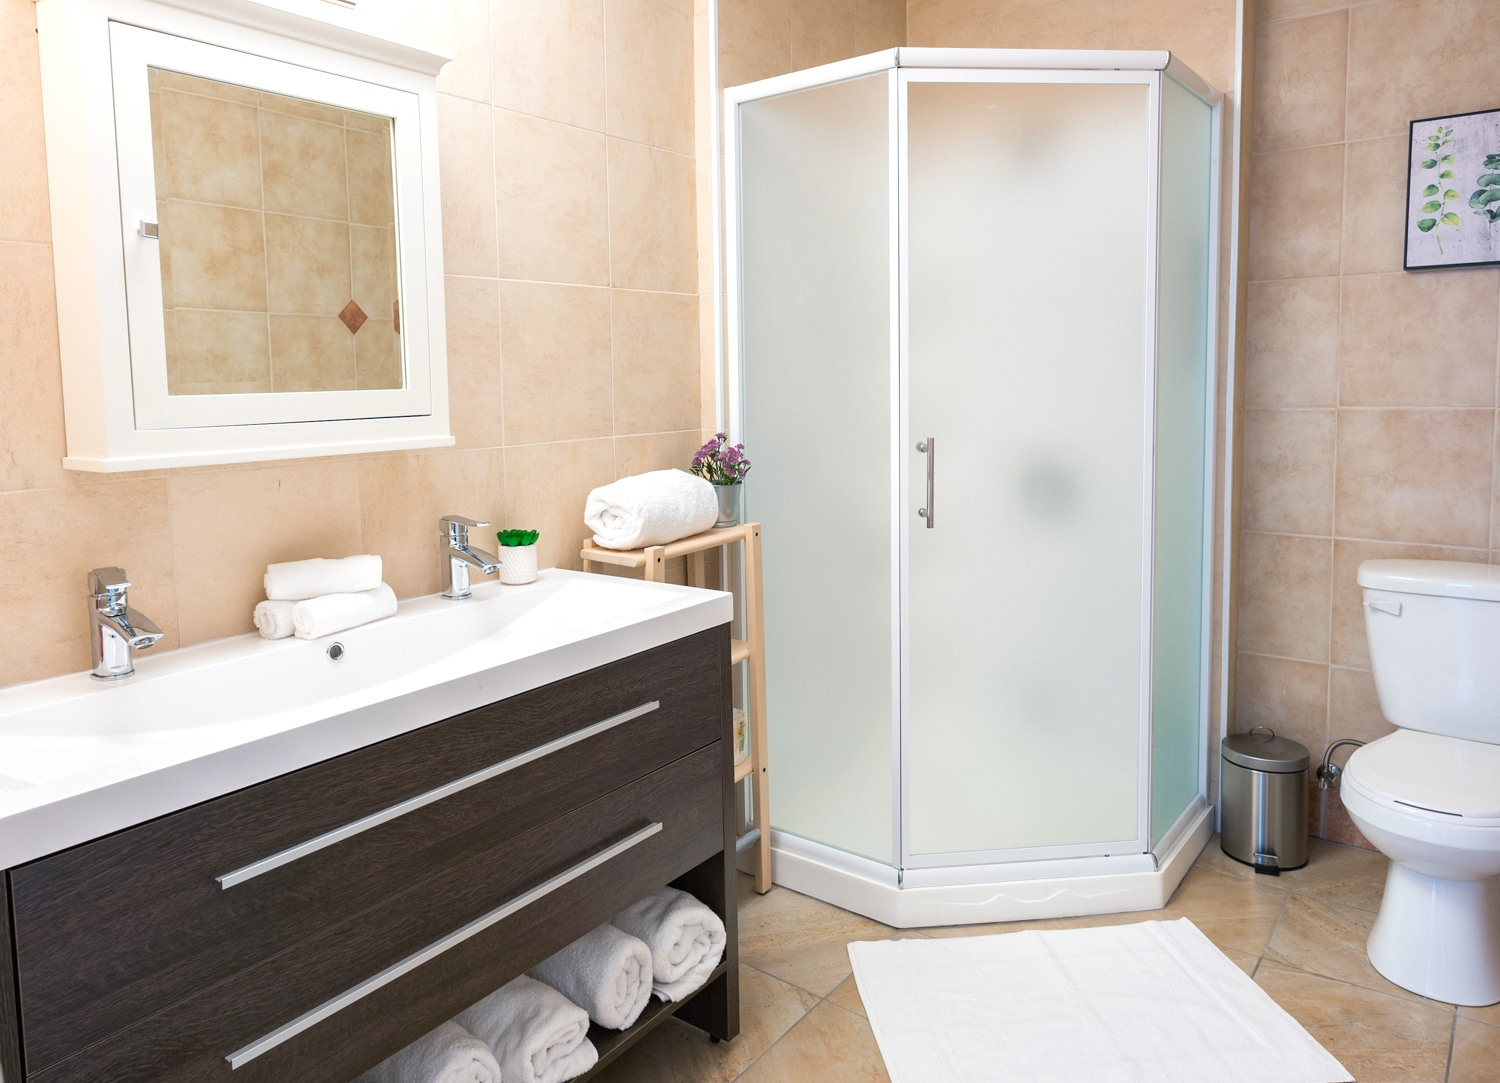 First full bathroom, towels and soap provided